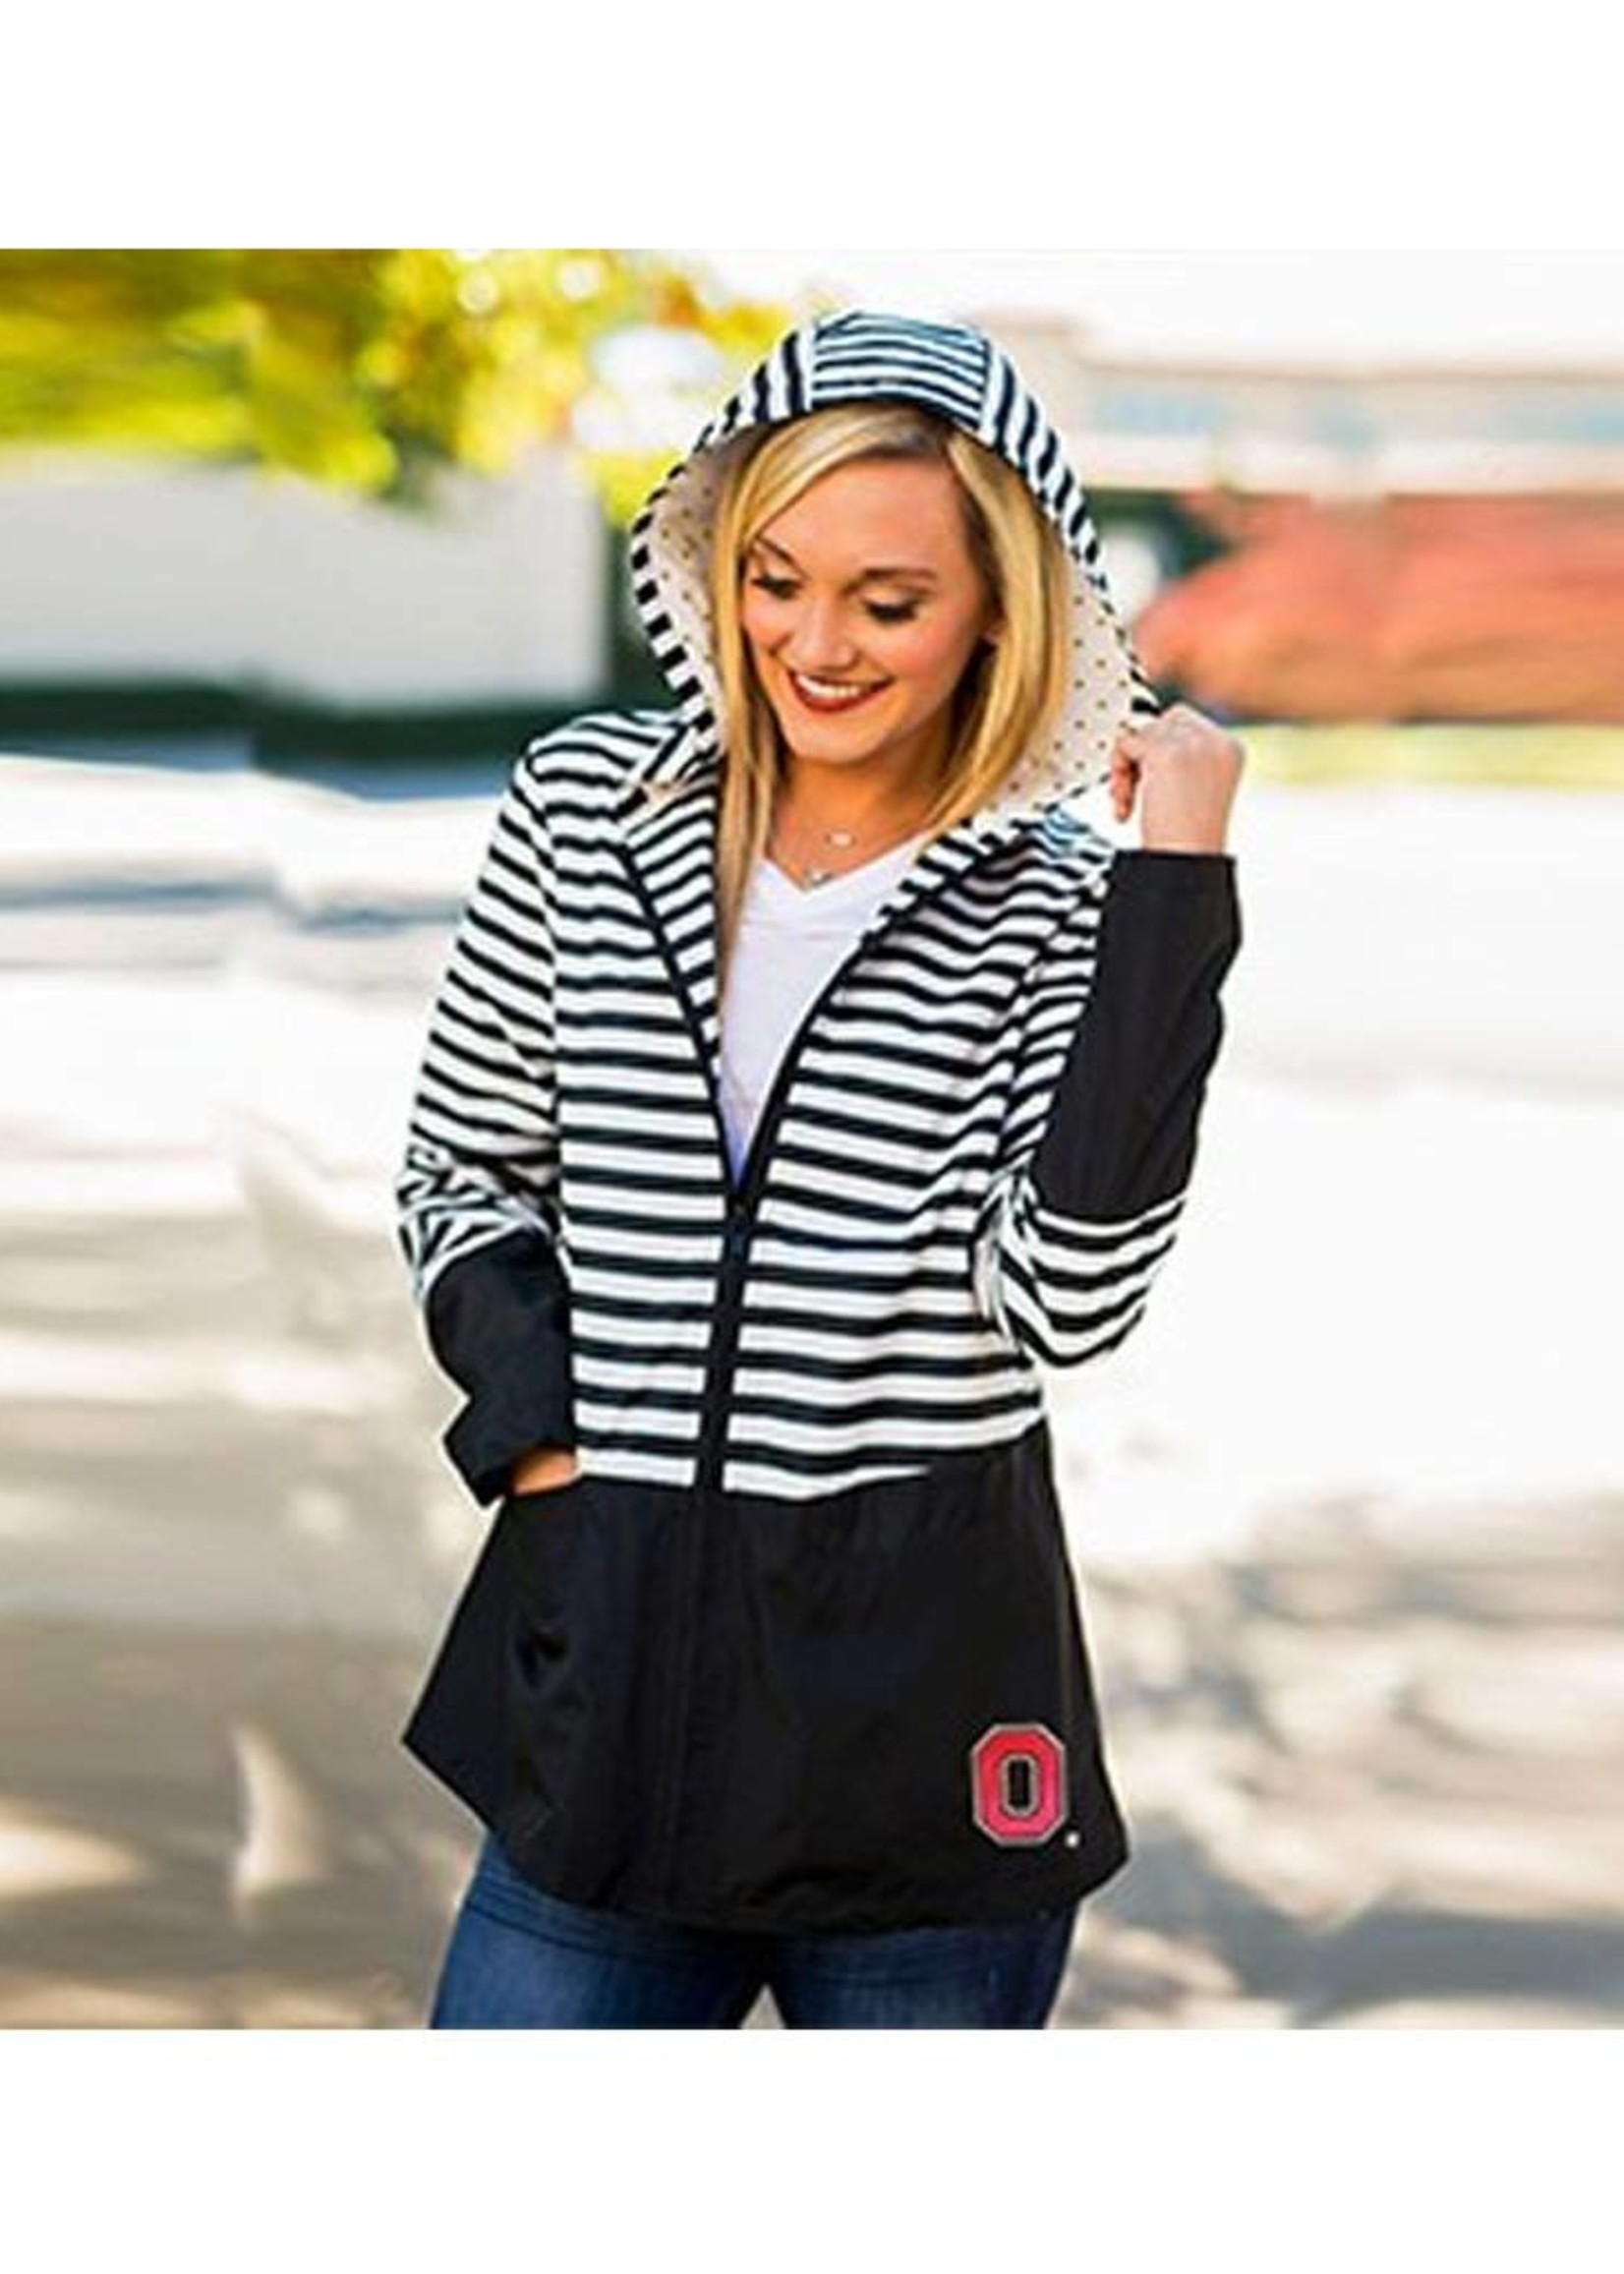 """Gameday Couture Ohio State University """"On The Move"""" Striped Packable Rain Jacket"""